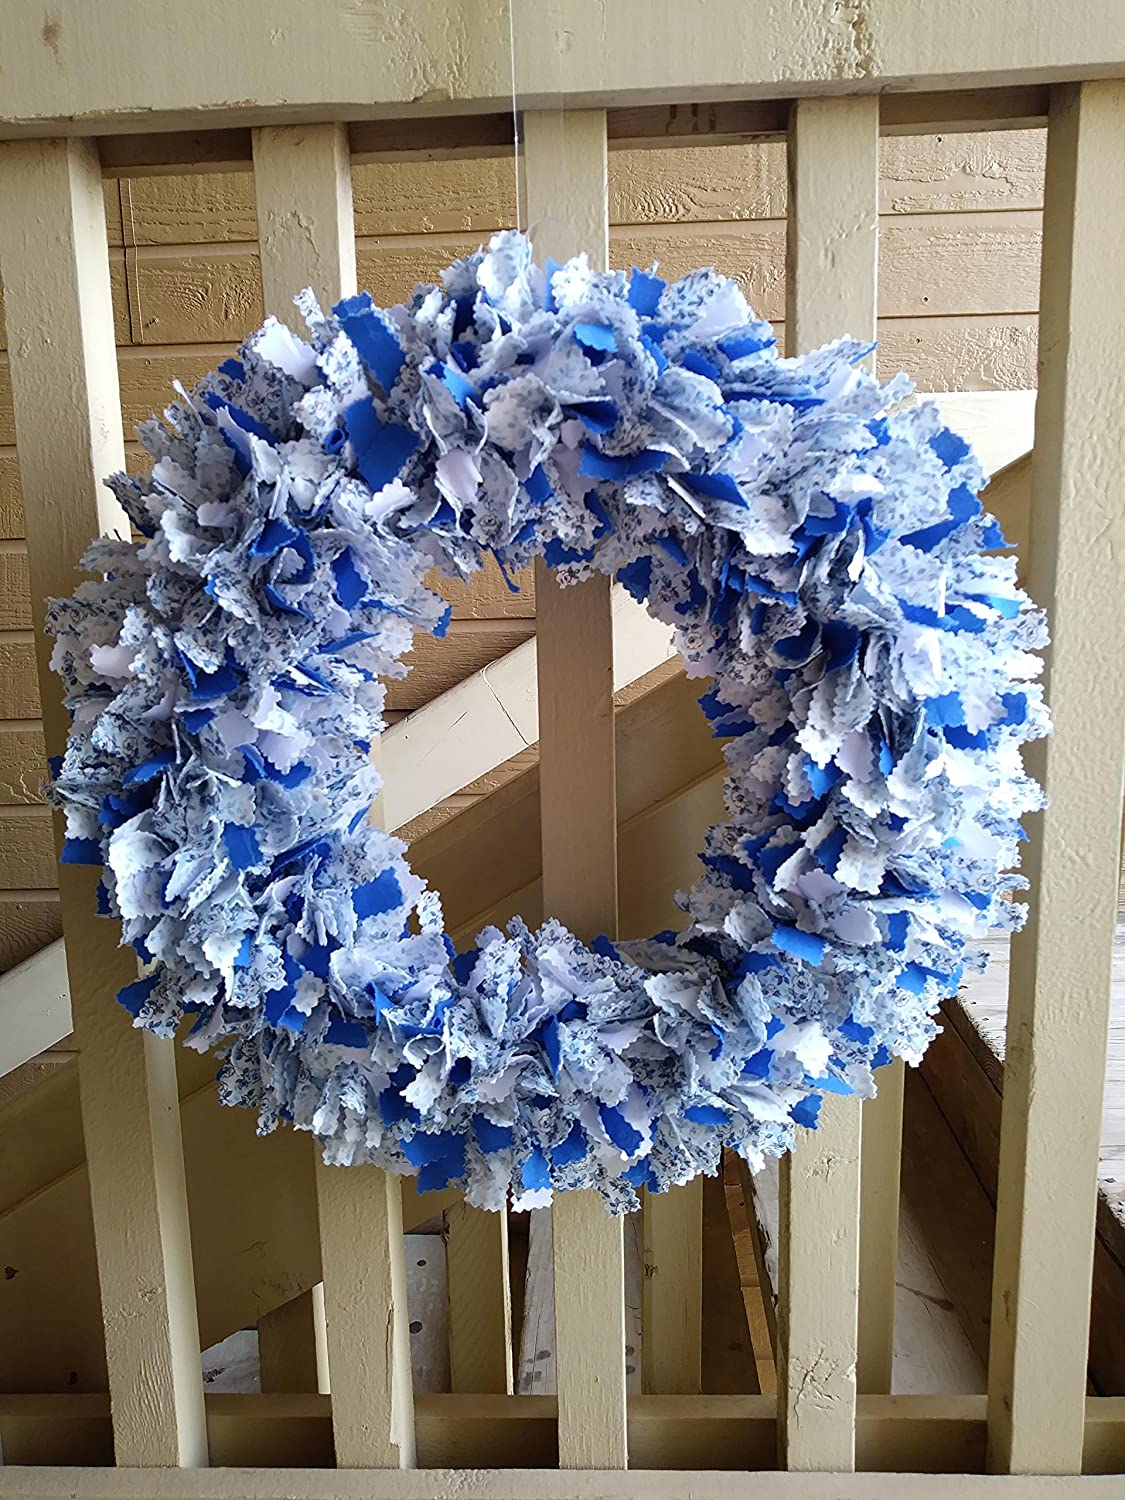 Amazon blue flower wreath year around wreath mom wreath house amazon blue flower wreath year around wreath mom wreath house warming gift stair decor wreath for front door country farmhouse wreath spring wreath rag izmirmasajfo